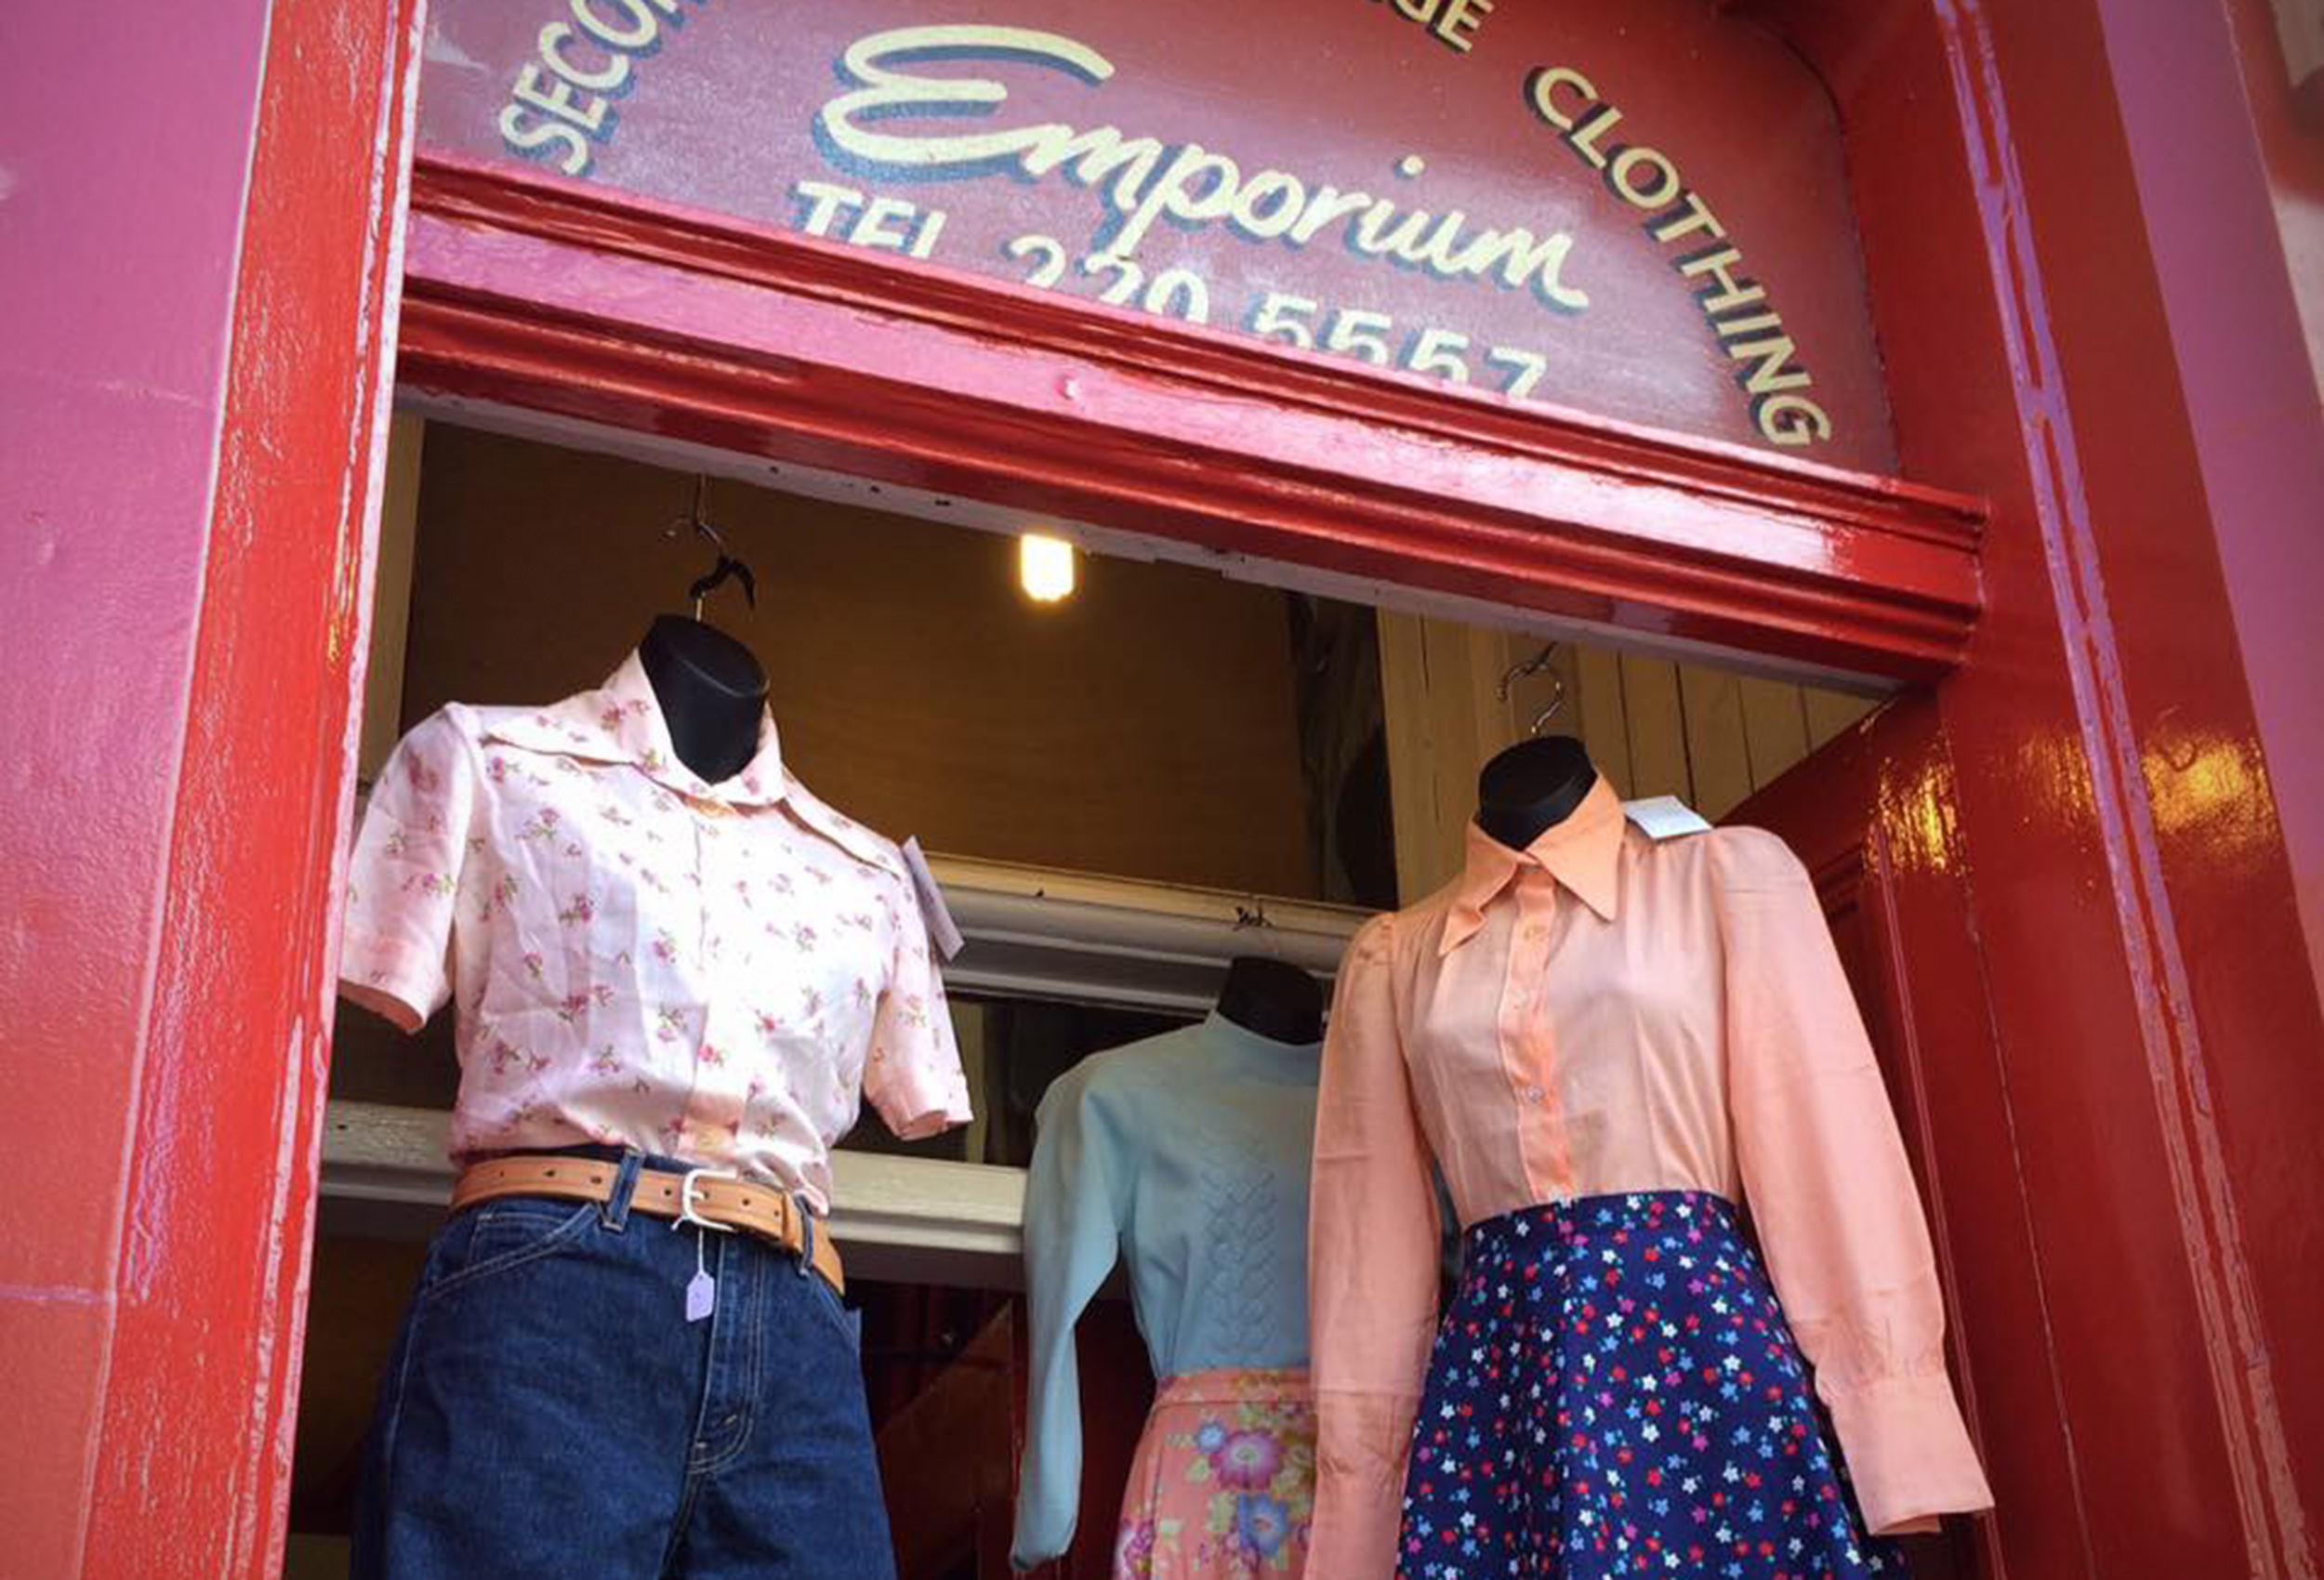 Vintage clothing on mannequins in the window at Armstrong's Emporium, Edinburgh